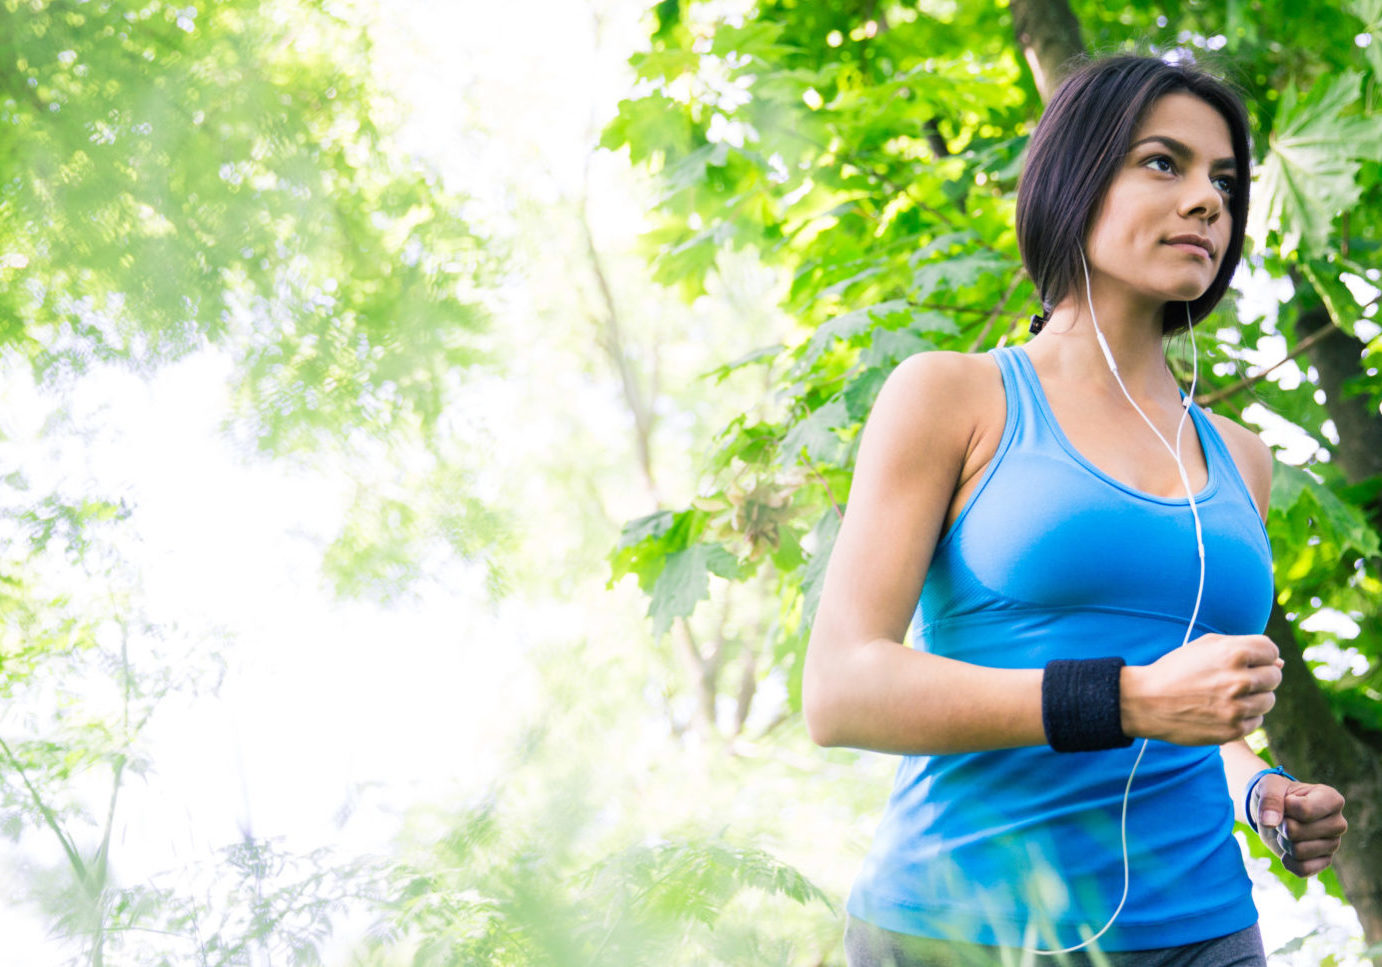 Pretty fitness woman in headphones running outdoors in park. Looking away